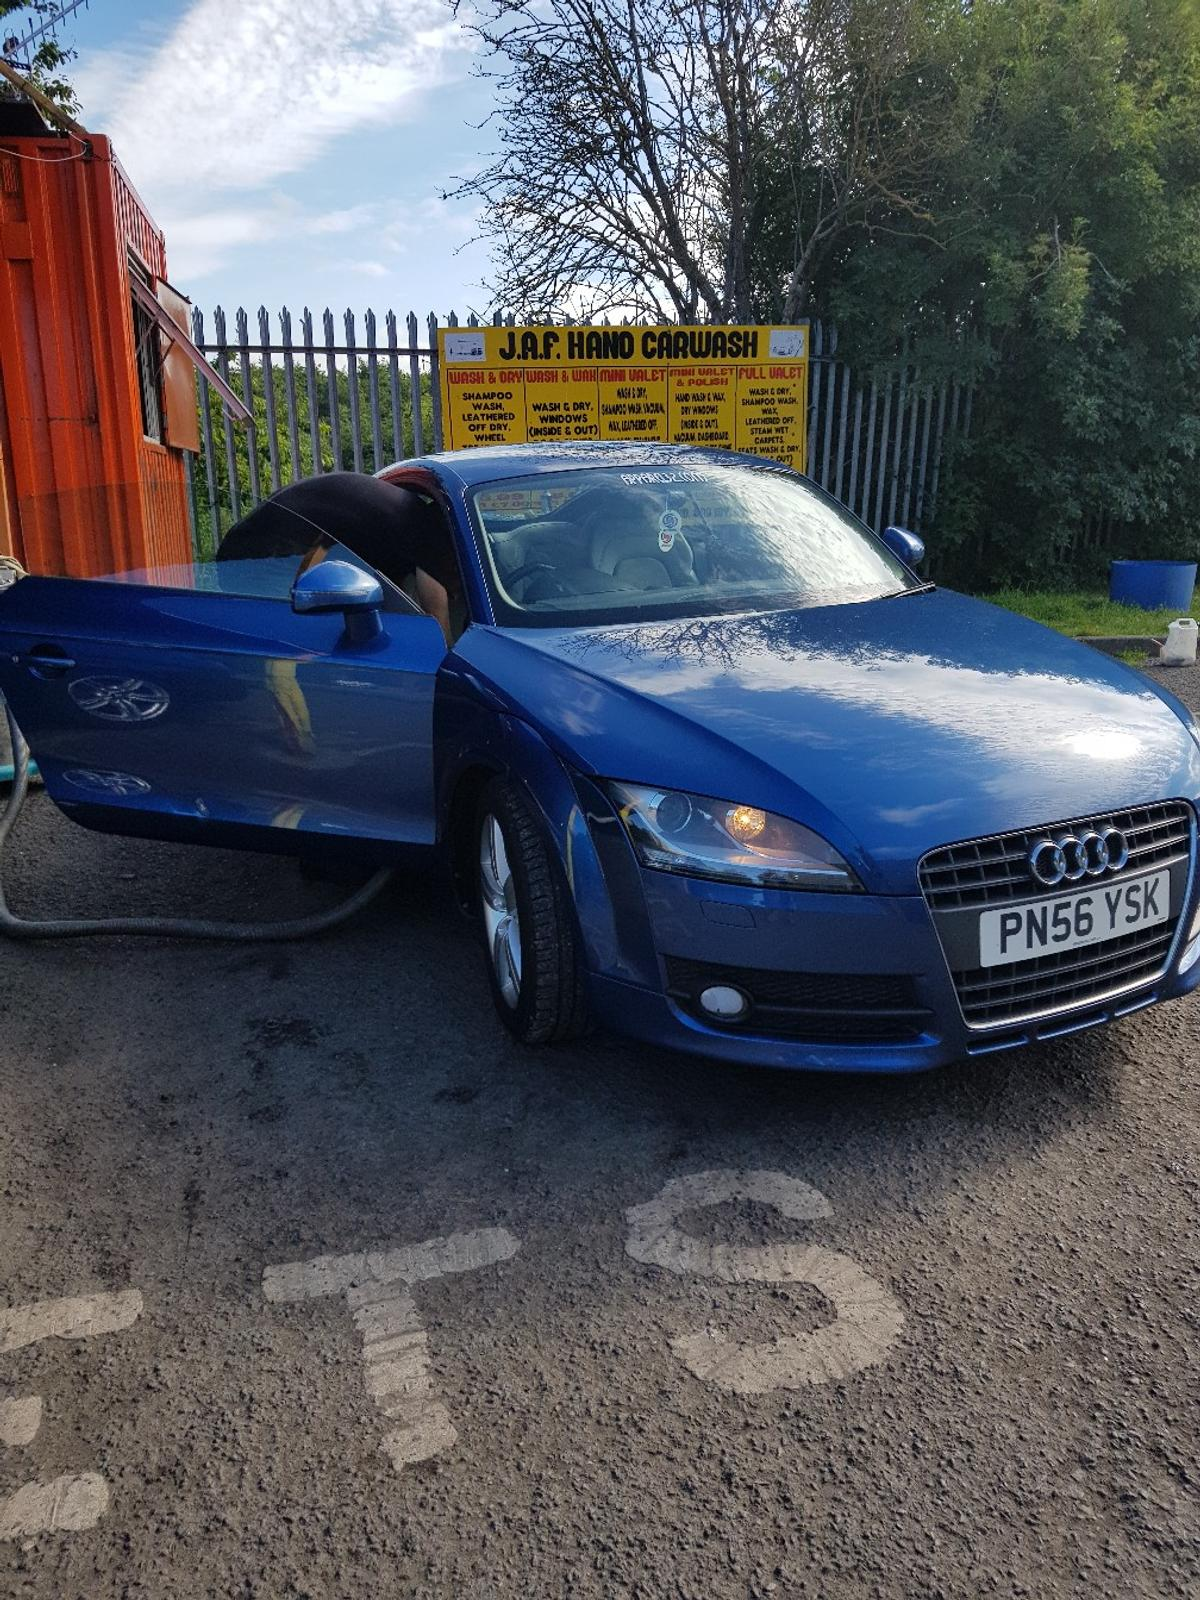 Audi tt 56 plate 197 bhp in SR2 Sunderland for £3,000 00 for